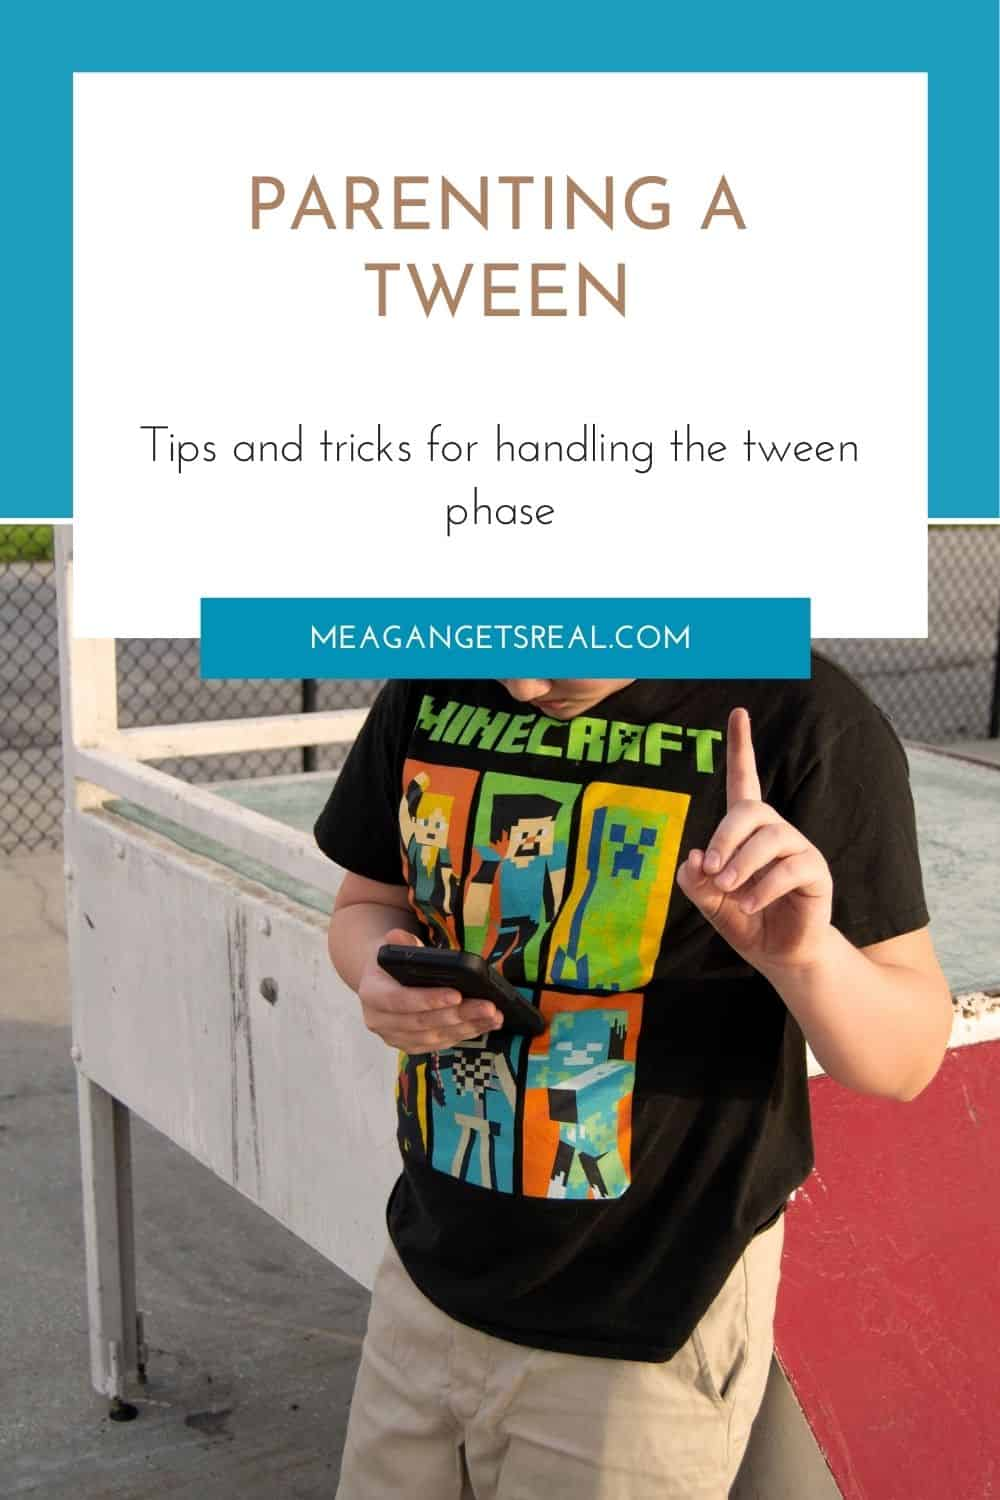 Parenting a tween - Tips and tricks for handling the tween phase